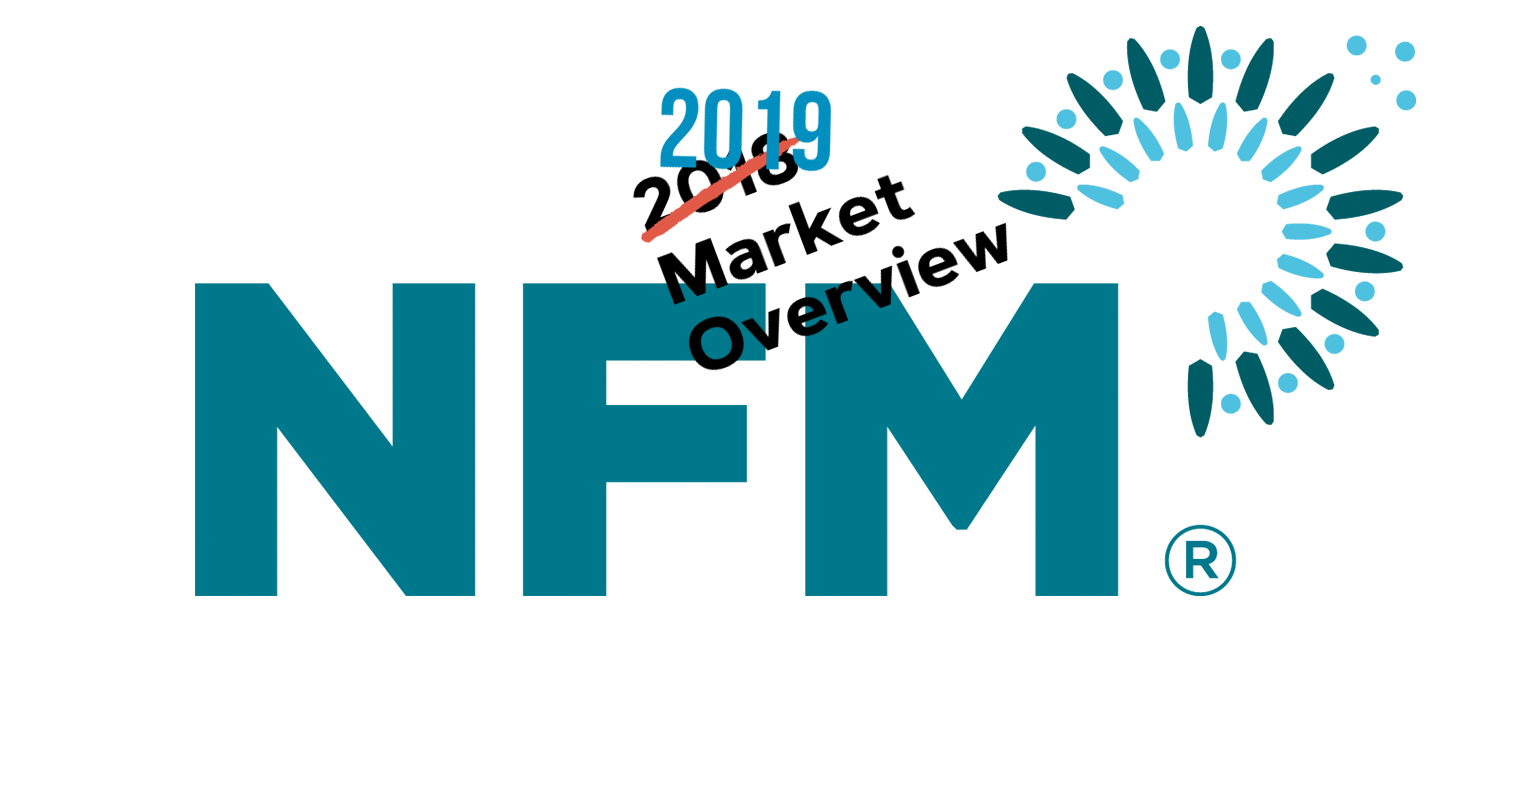 2019 nfm market overview coming in july 2020